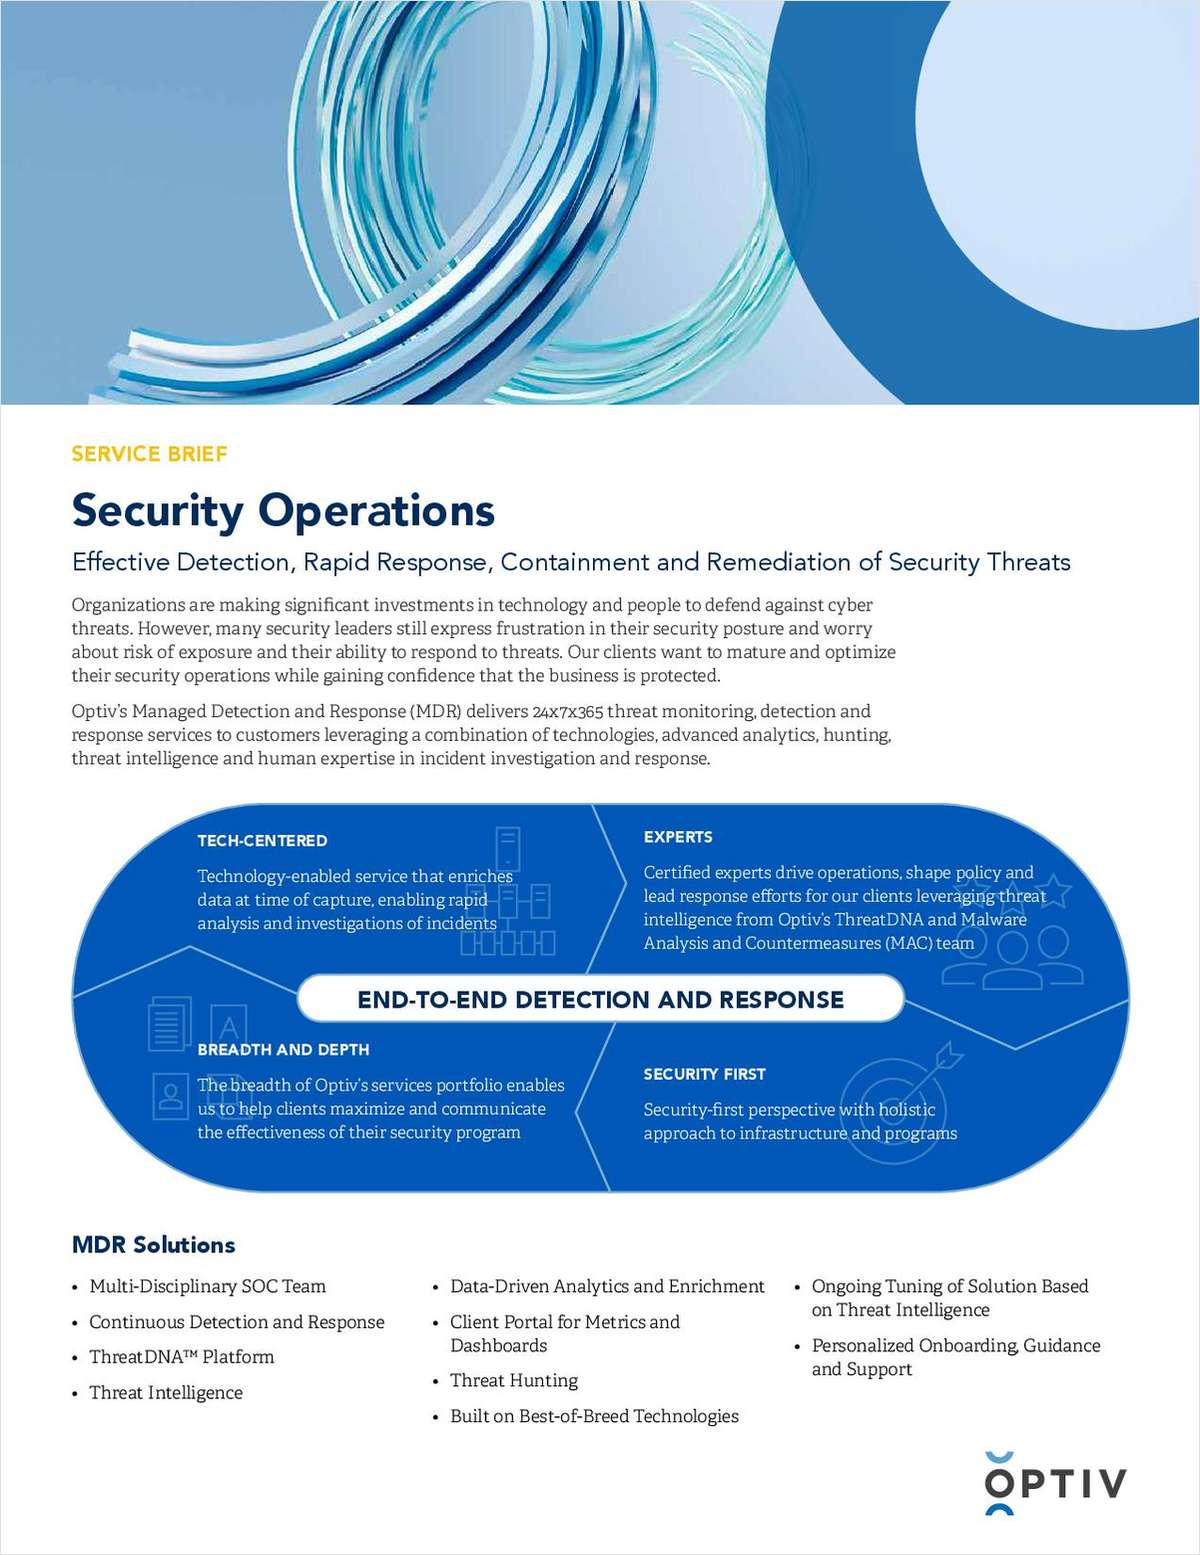 Service Brief: Security Operations